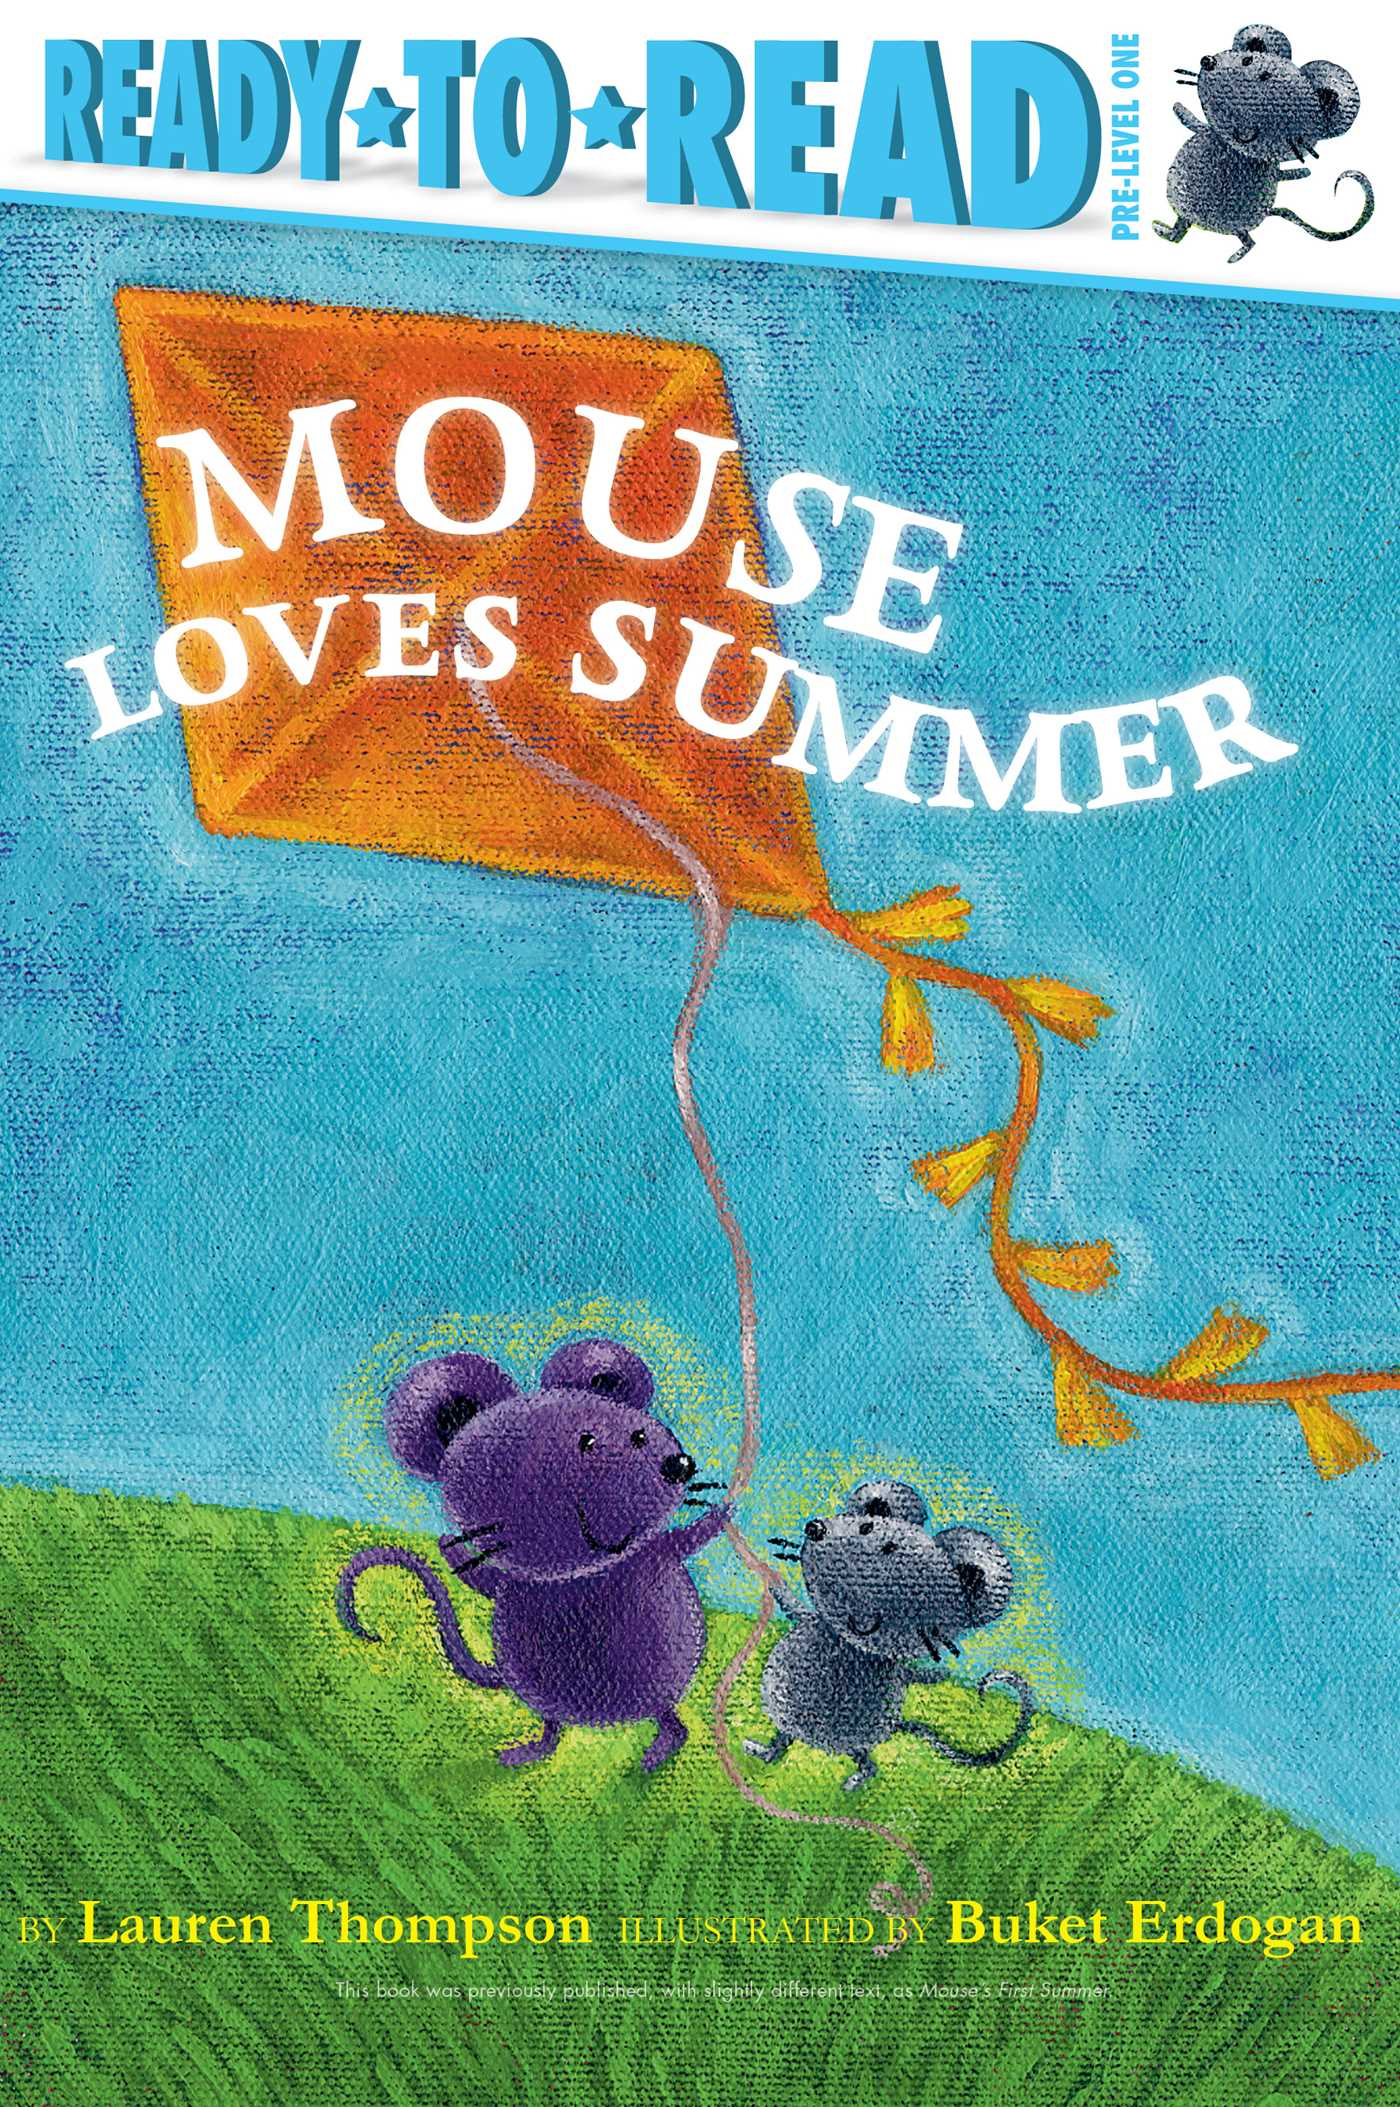 Mouse loves summer 9781534420564 hr